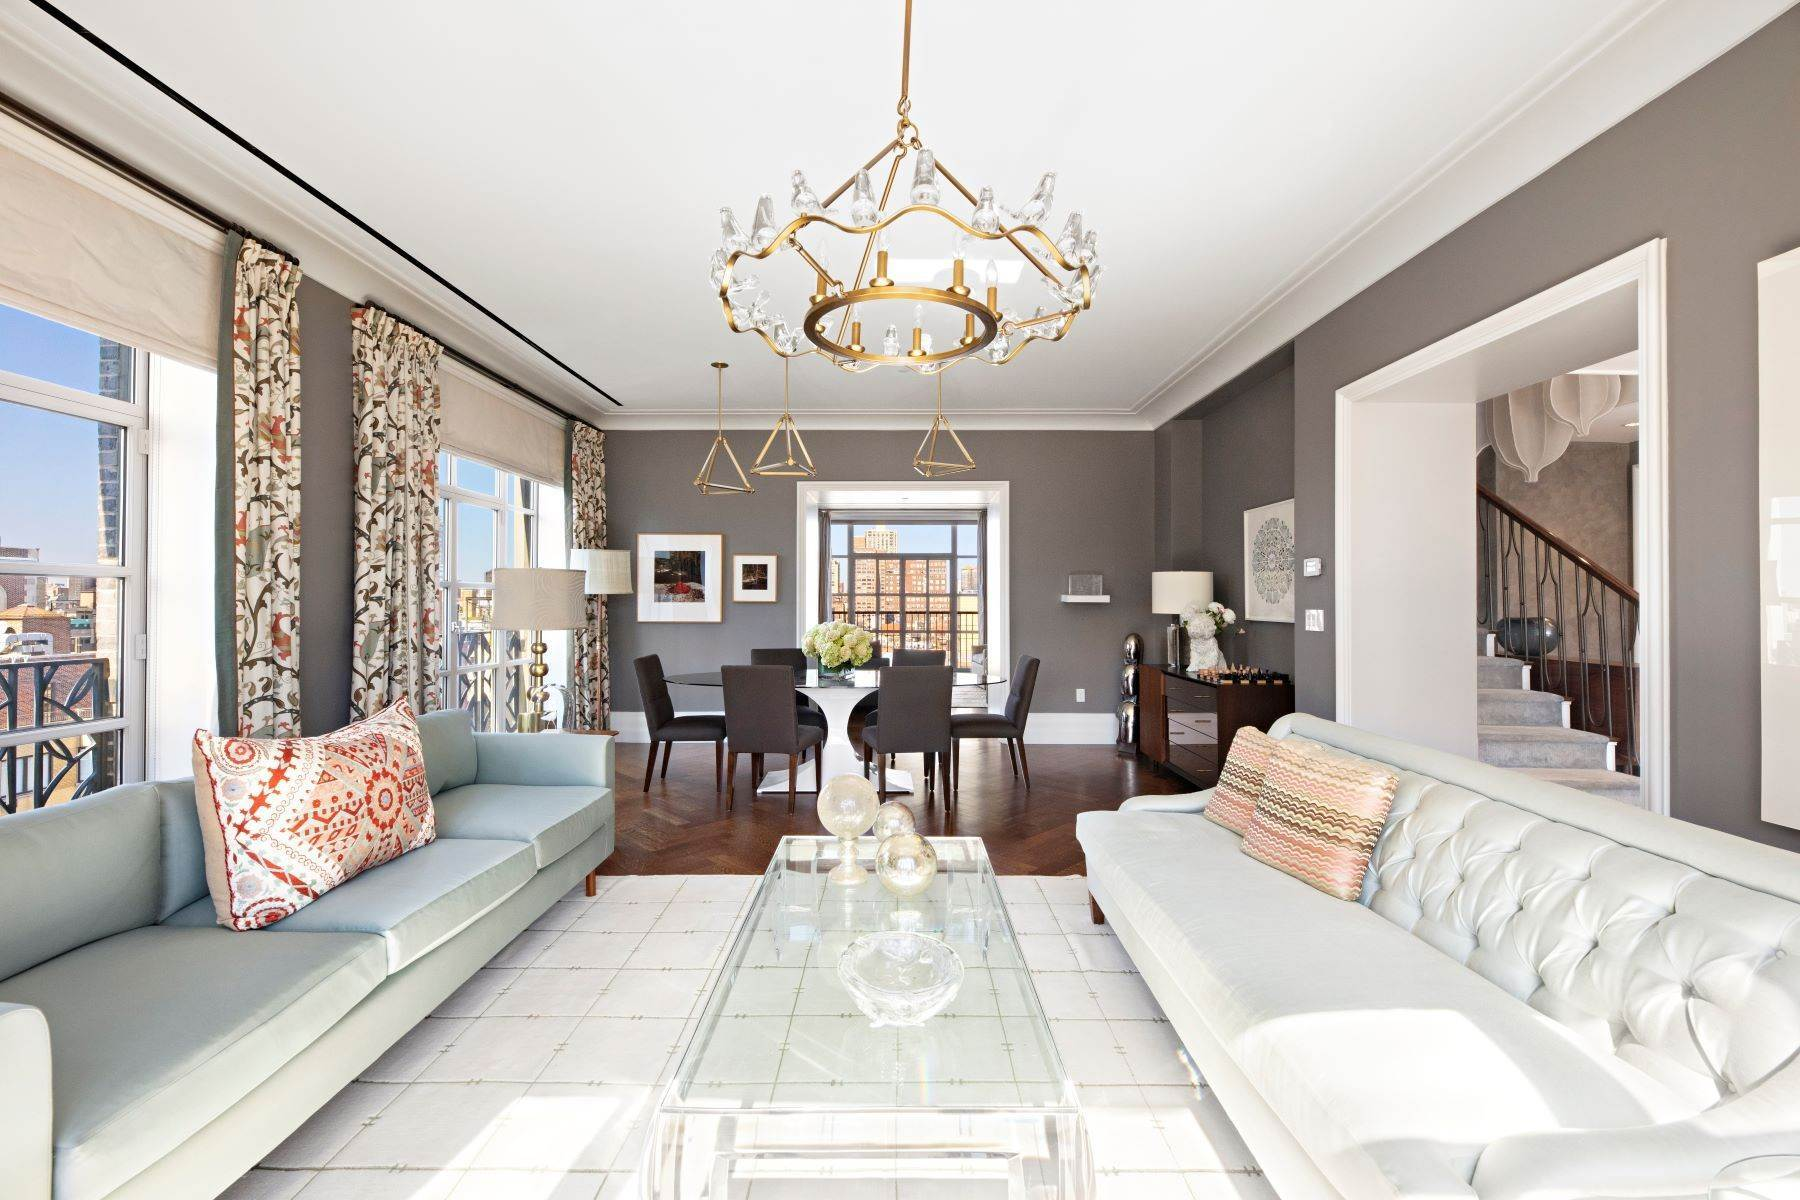 Condominiums for Sale at 135 East 79th Street PH19W Condo Duplex 135 East 79th Street, PH19W New York, New York 10028 United States